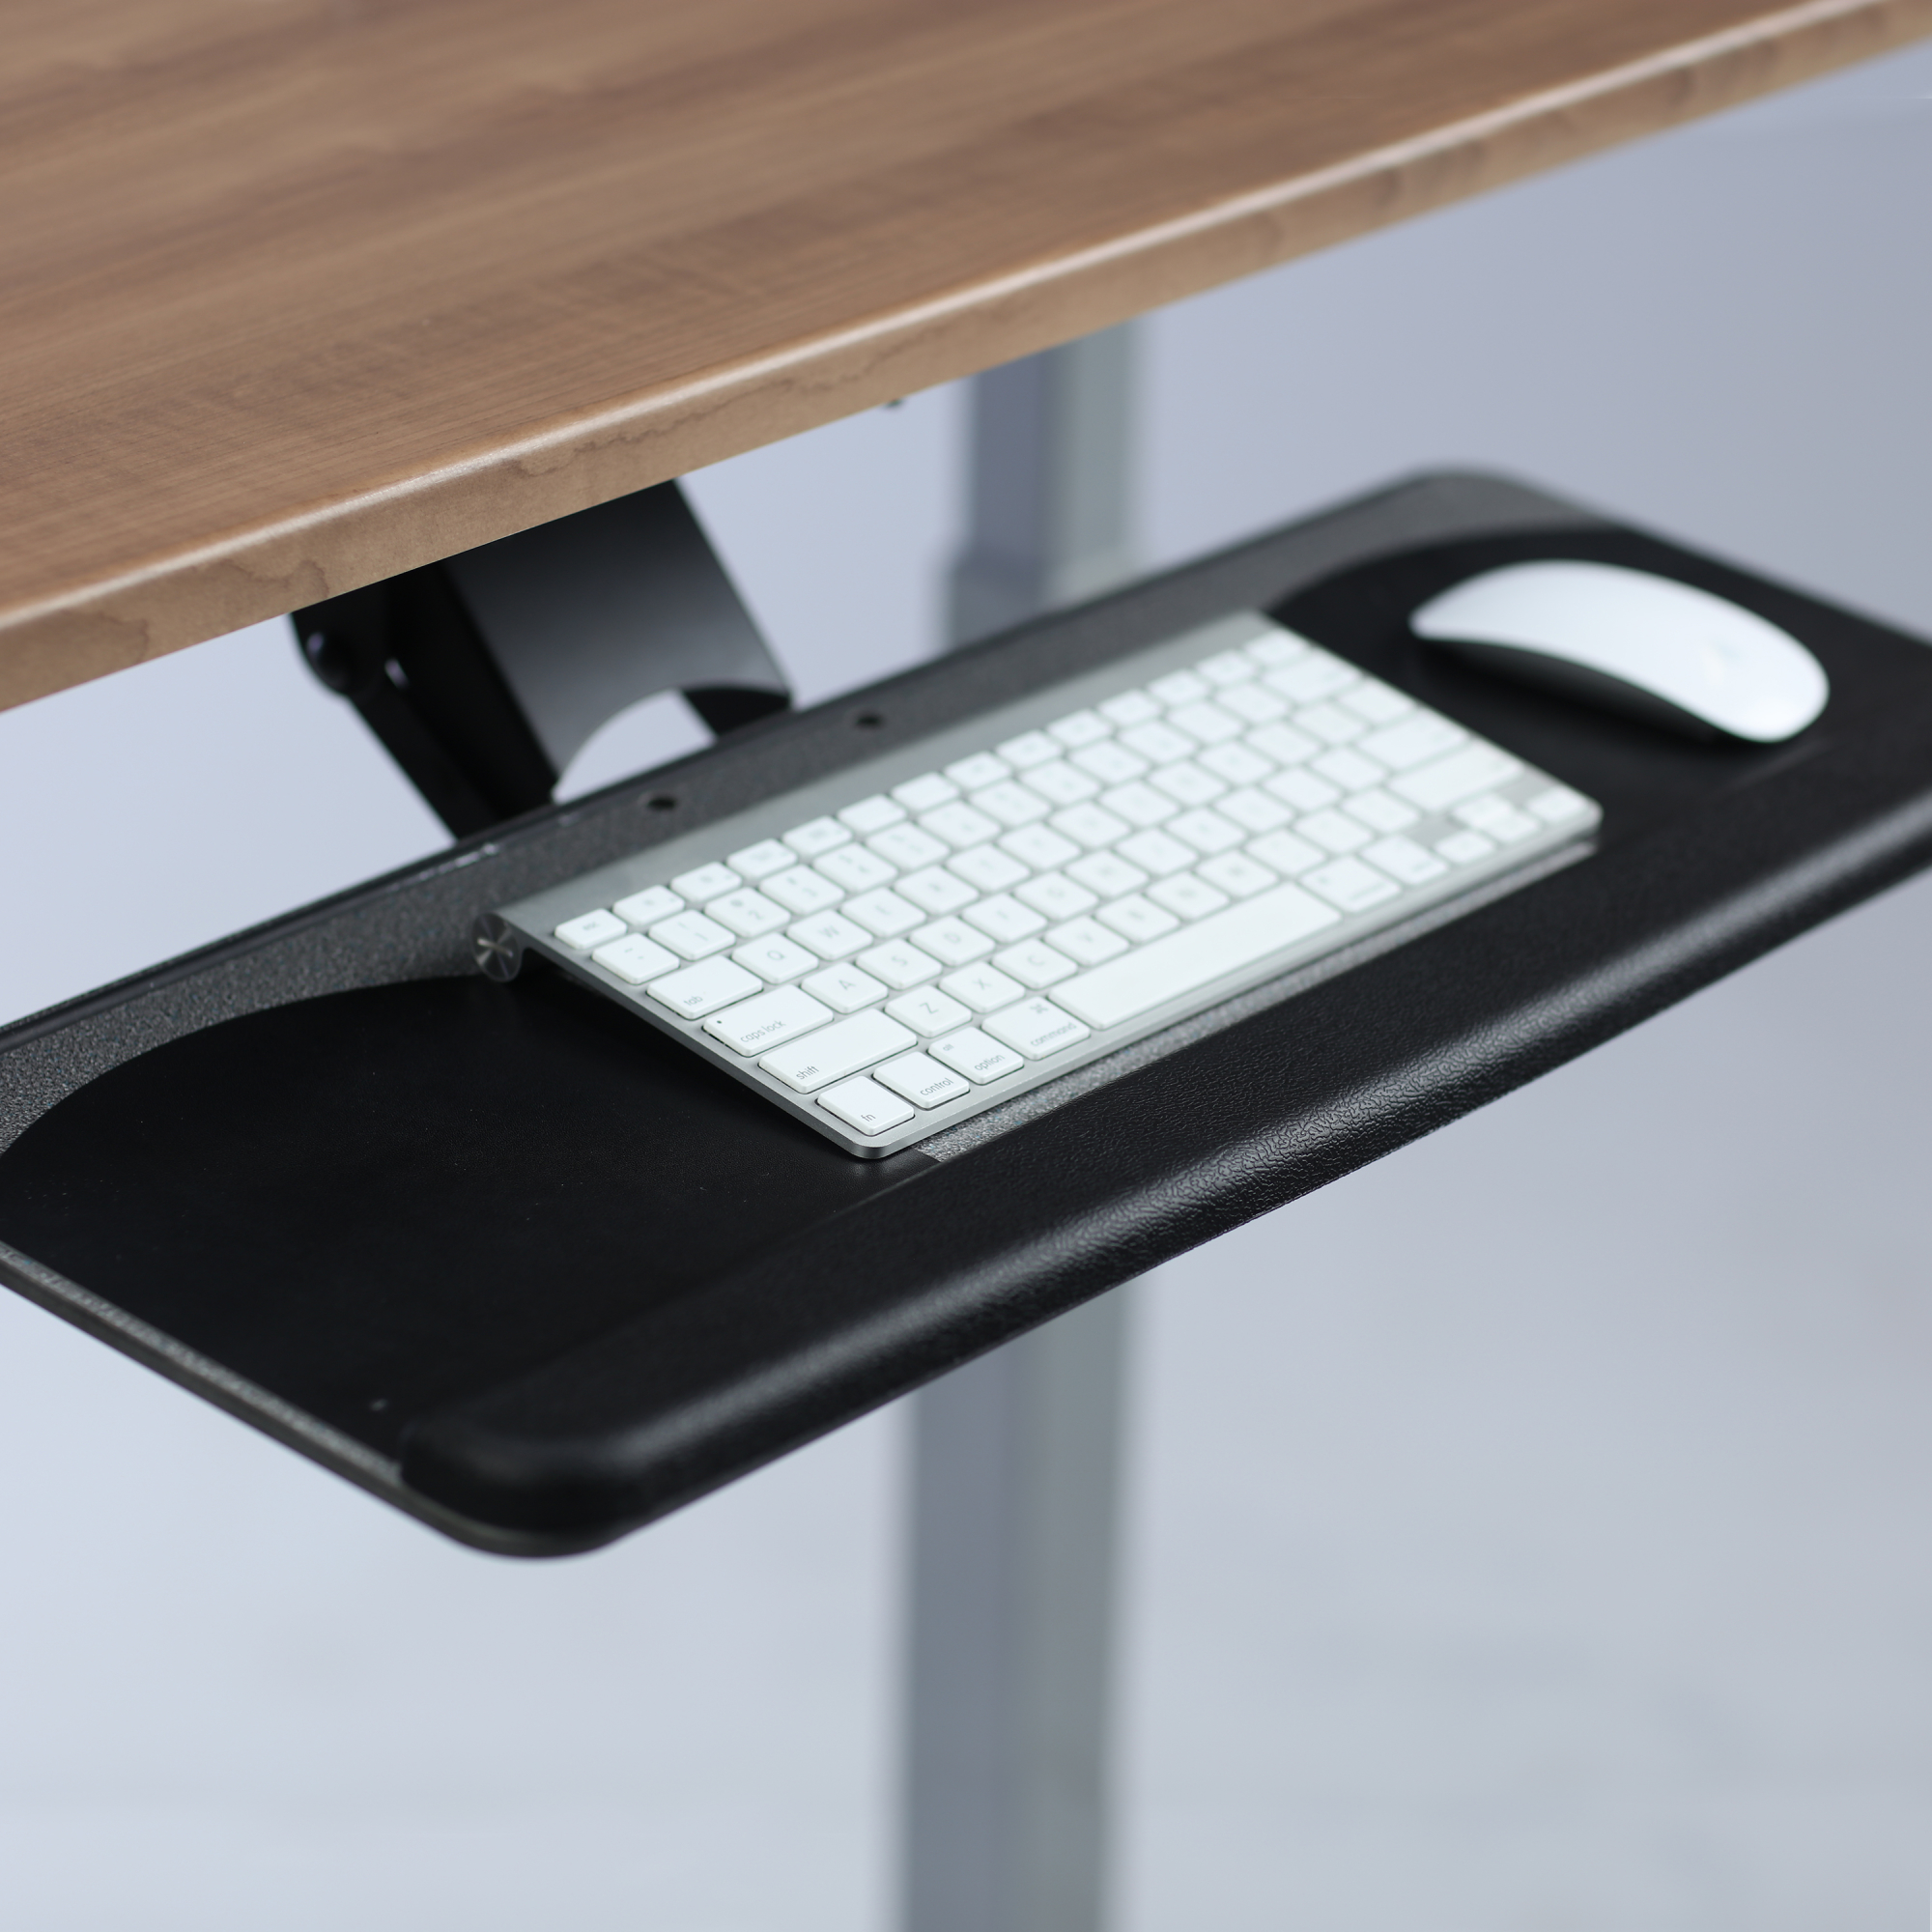 Image for Keyboard Tray - 991010 from SmartMoves